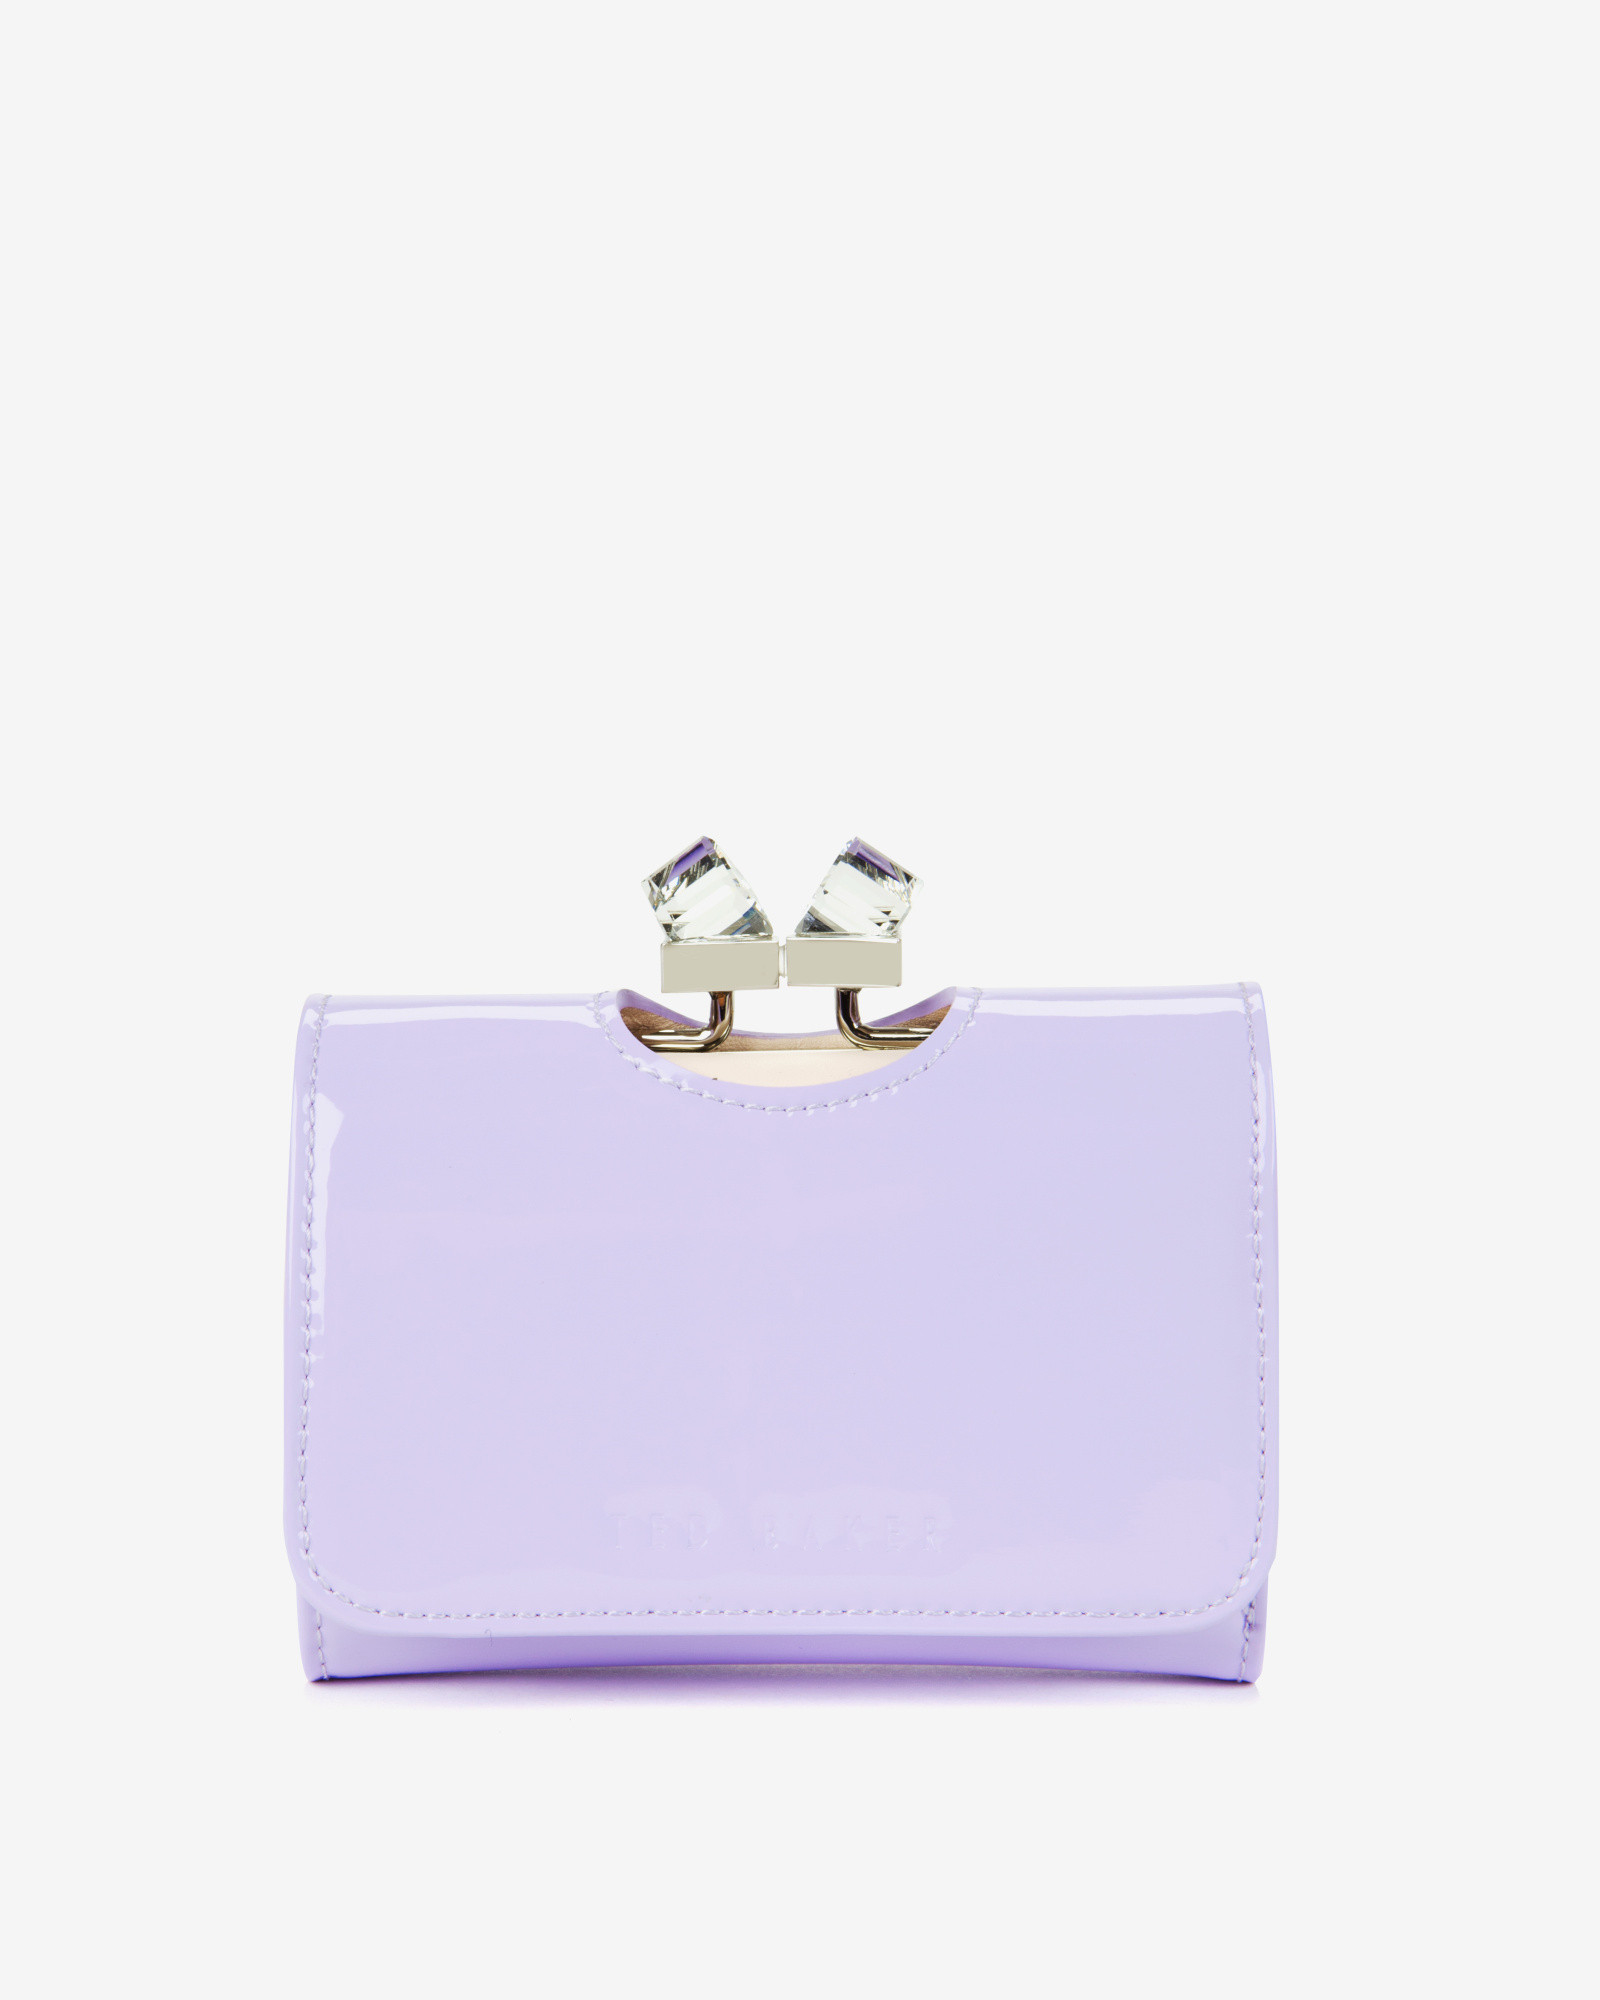 fb3ddf19e53a Ted Baker Small Patent Crystal Frame Purse in Purple - Lyst